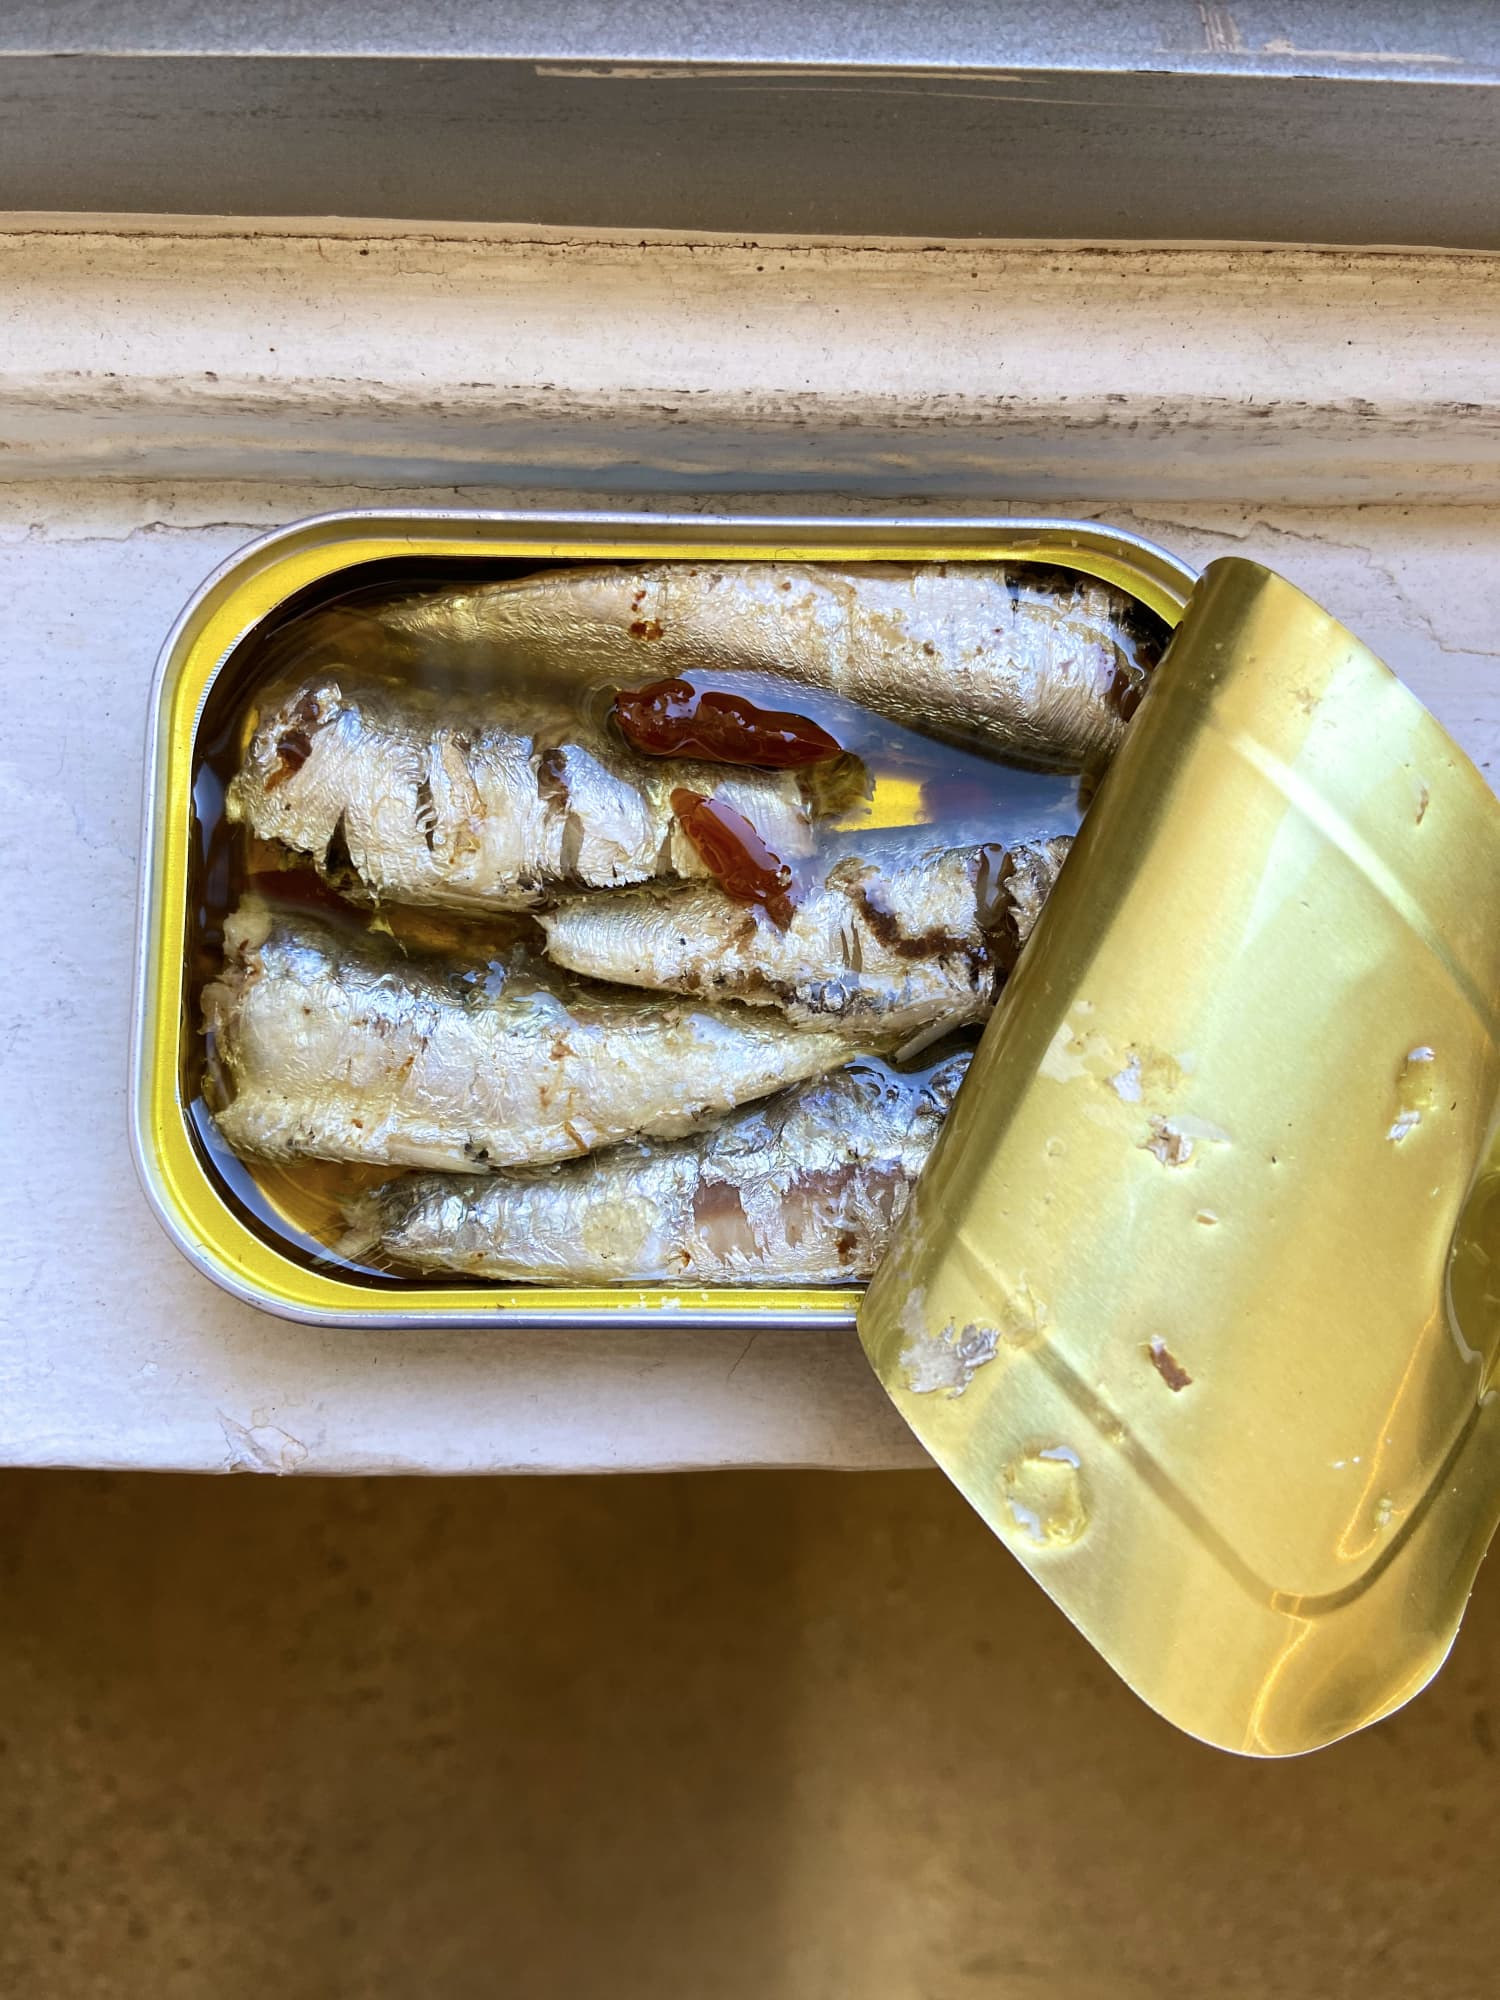 This Underrated Canned Fish Is a Little Luxury Right Now